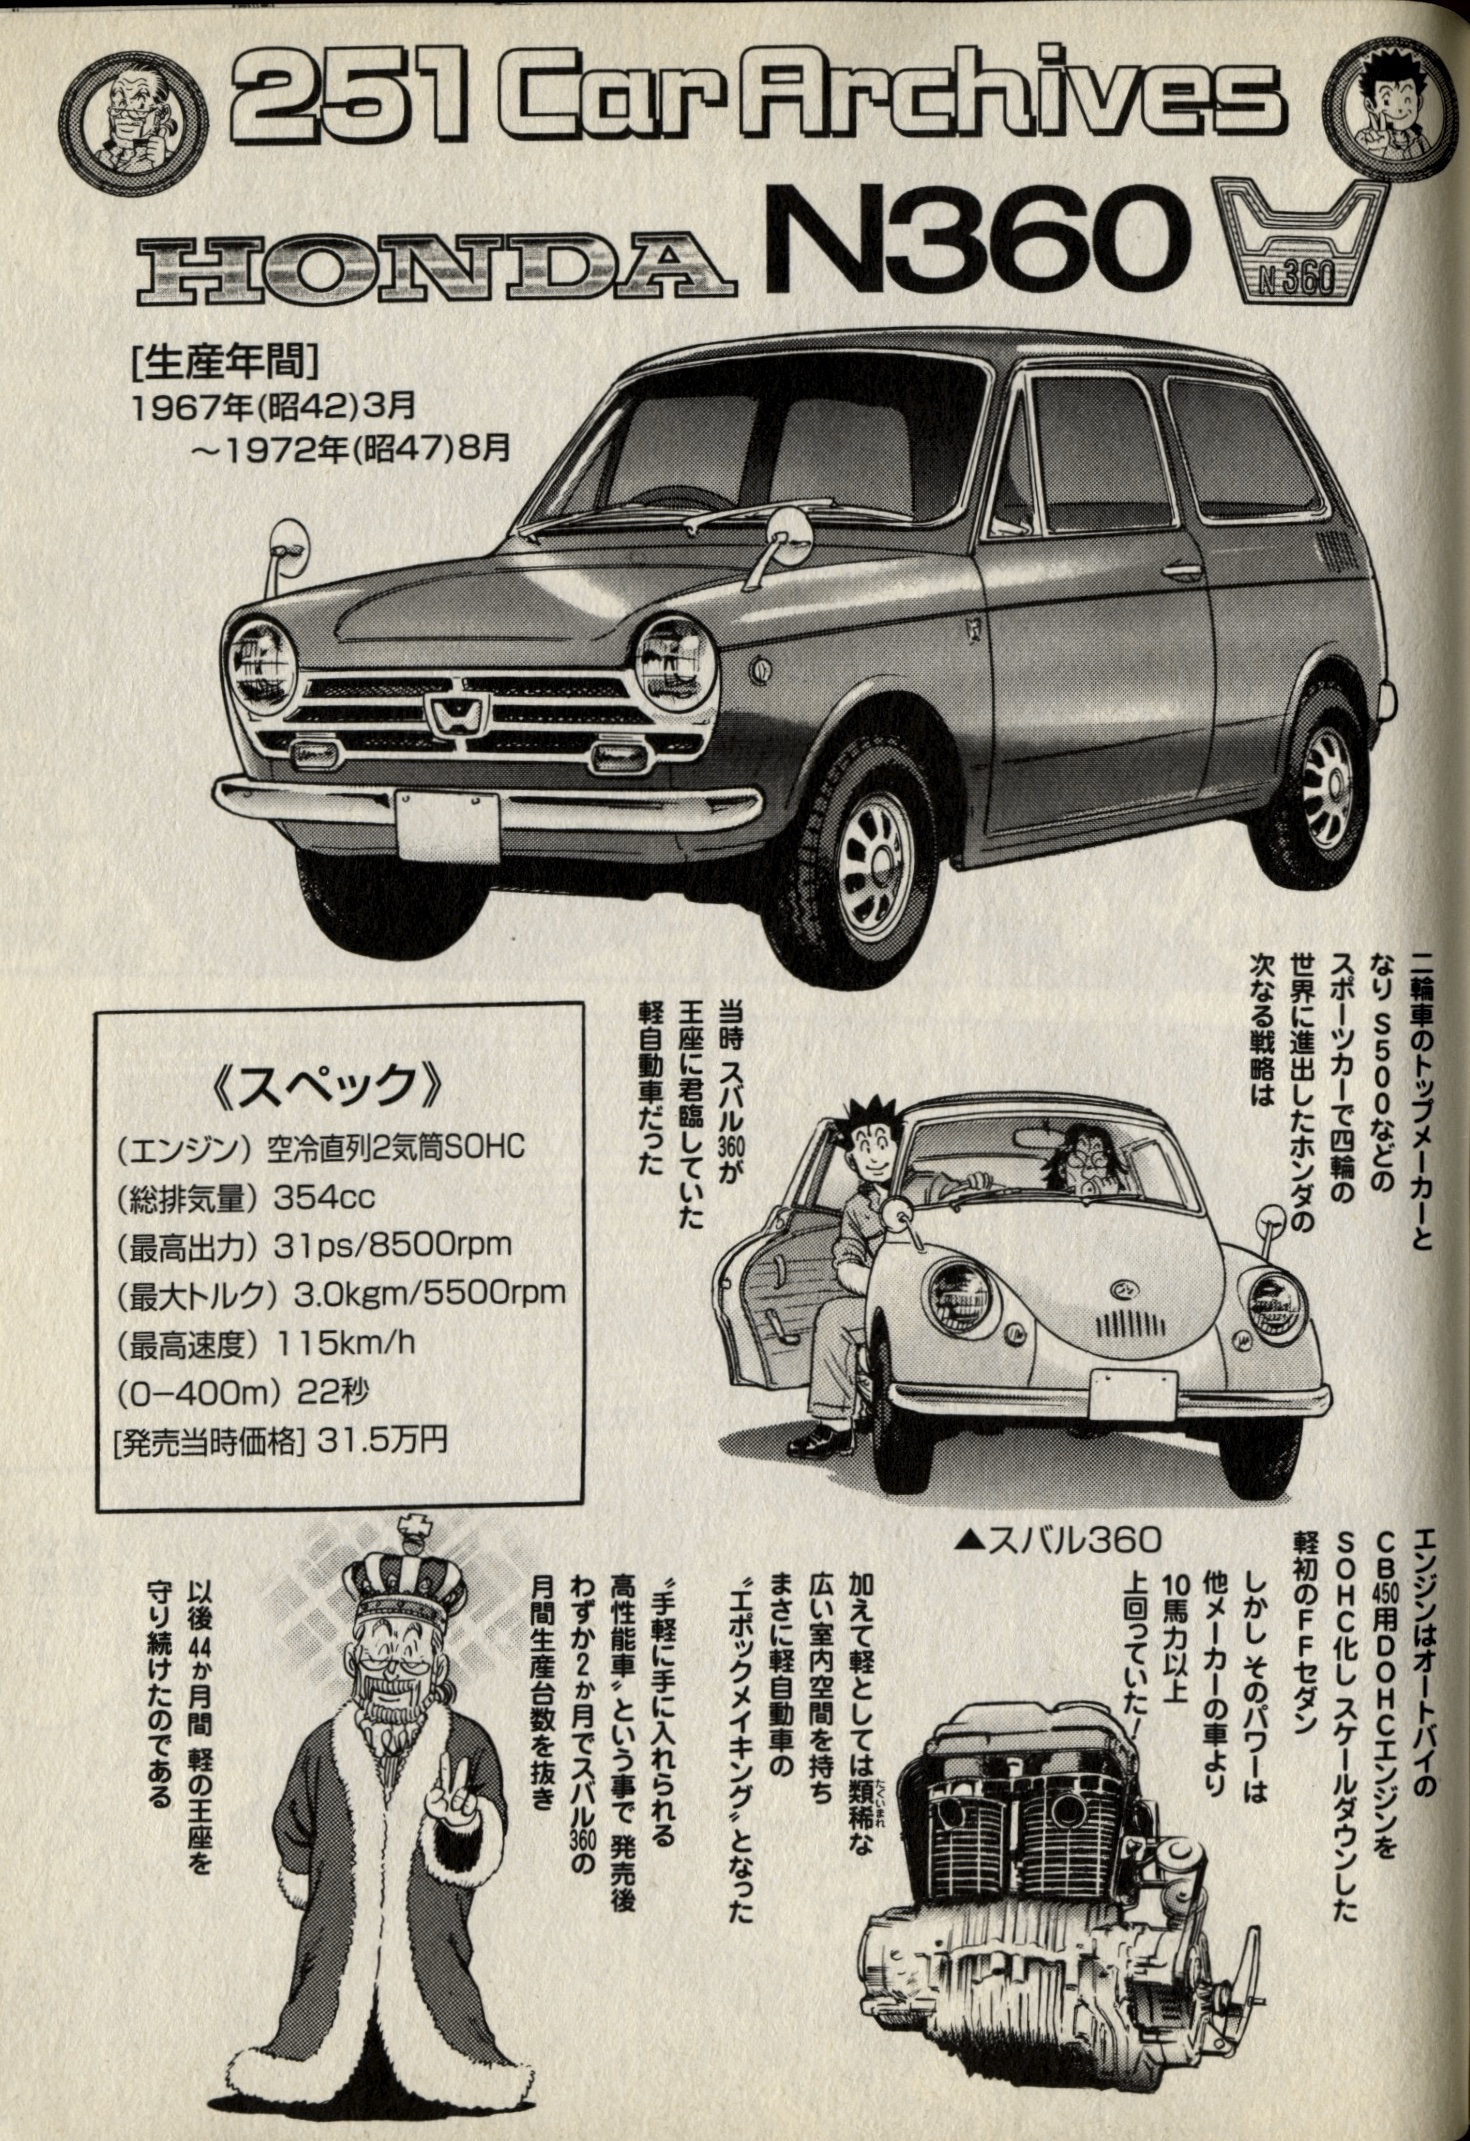 Honda N360 facts